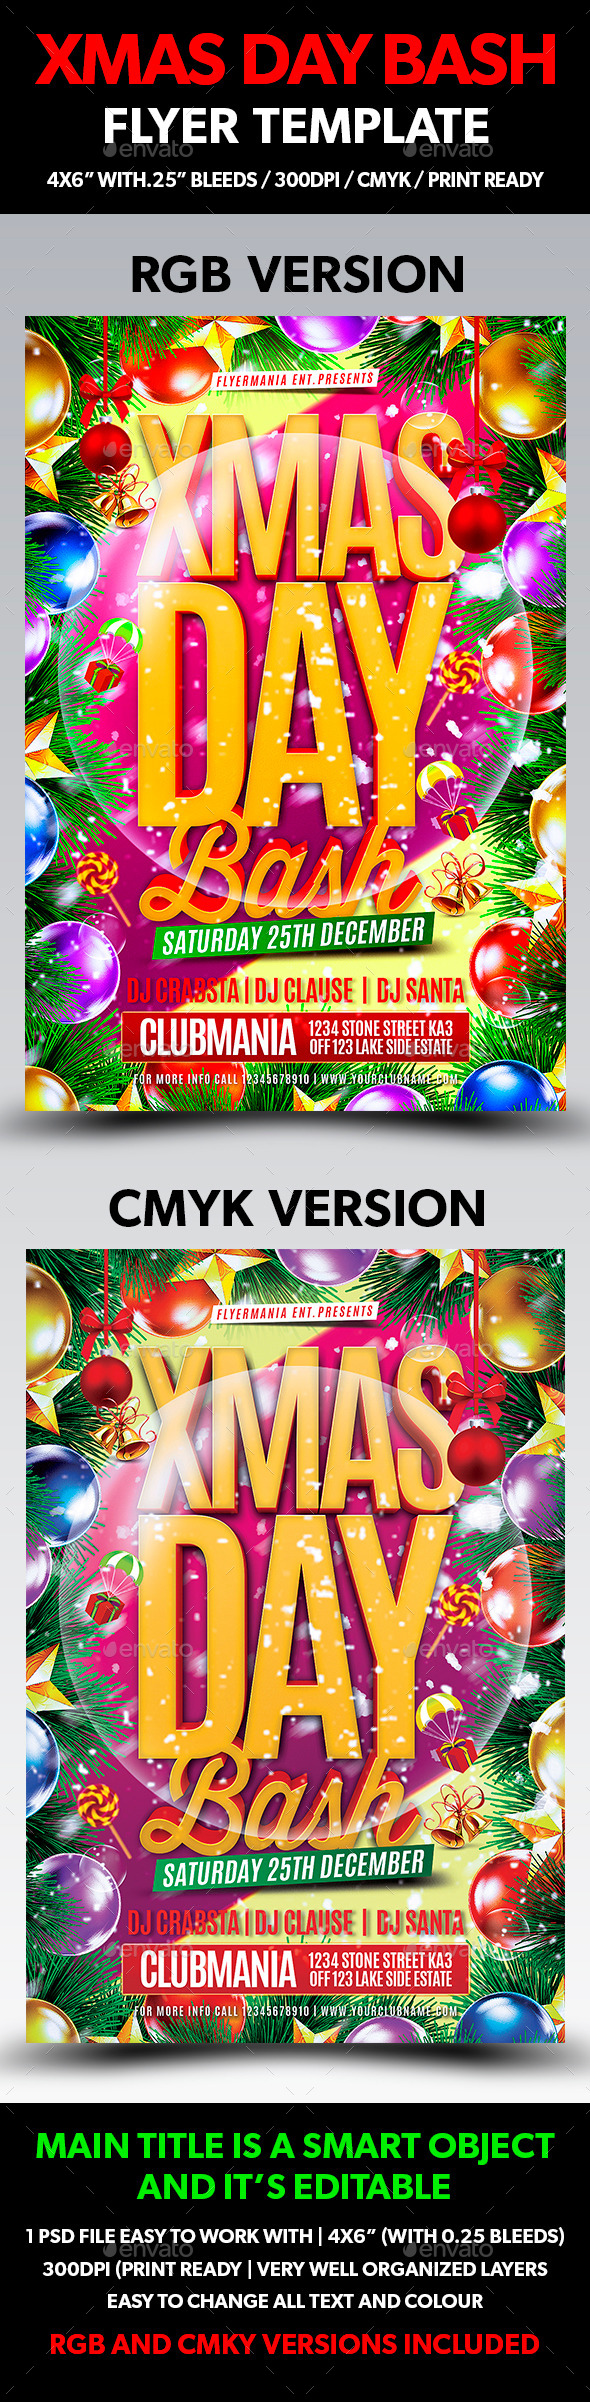 Xmas Day Bash Flyer Template - Flyers Print Templates